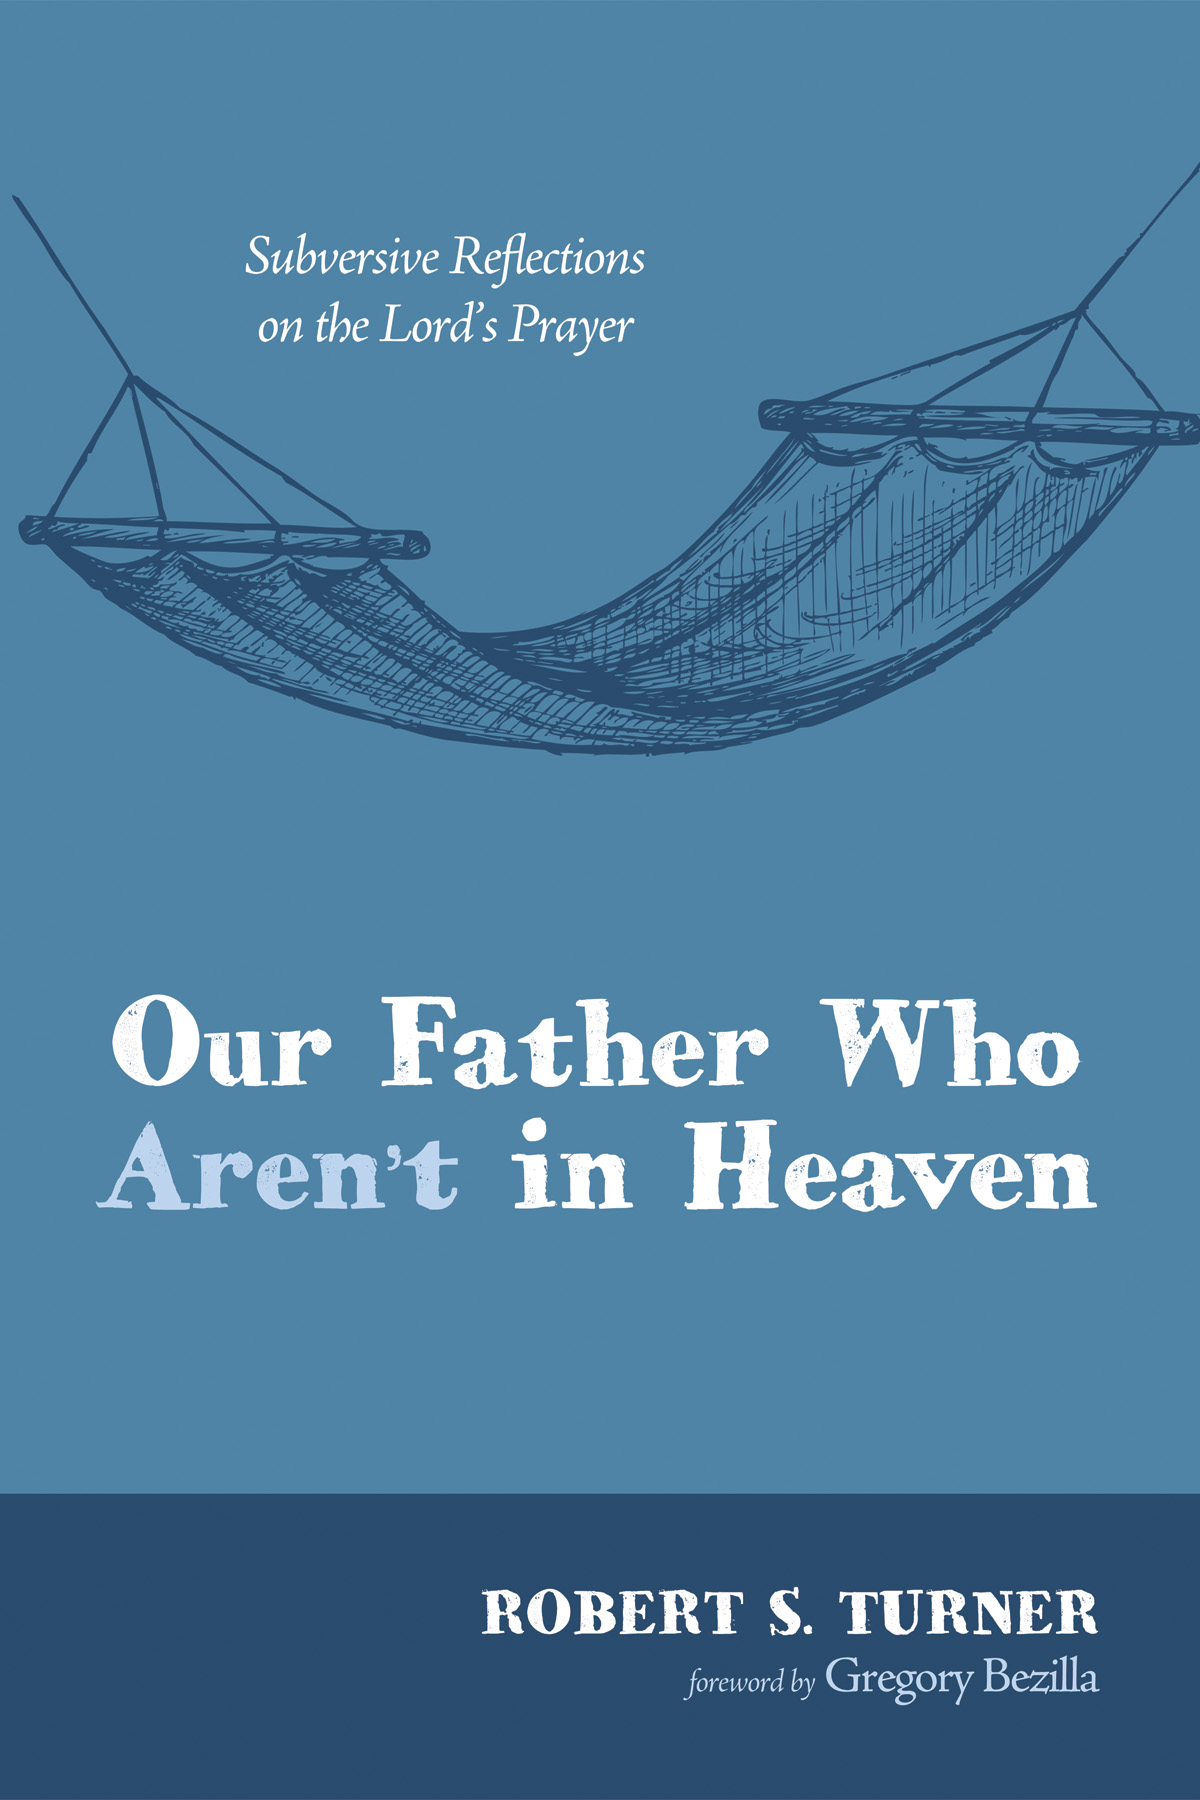 READ MY BOOK - Robert S. Turner is the author of the book Our Father Who Aren't in Heaven, published by Wipf and Stock in 2015. Available in paperback, Kindle, and other e-book formats.